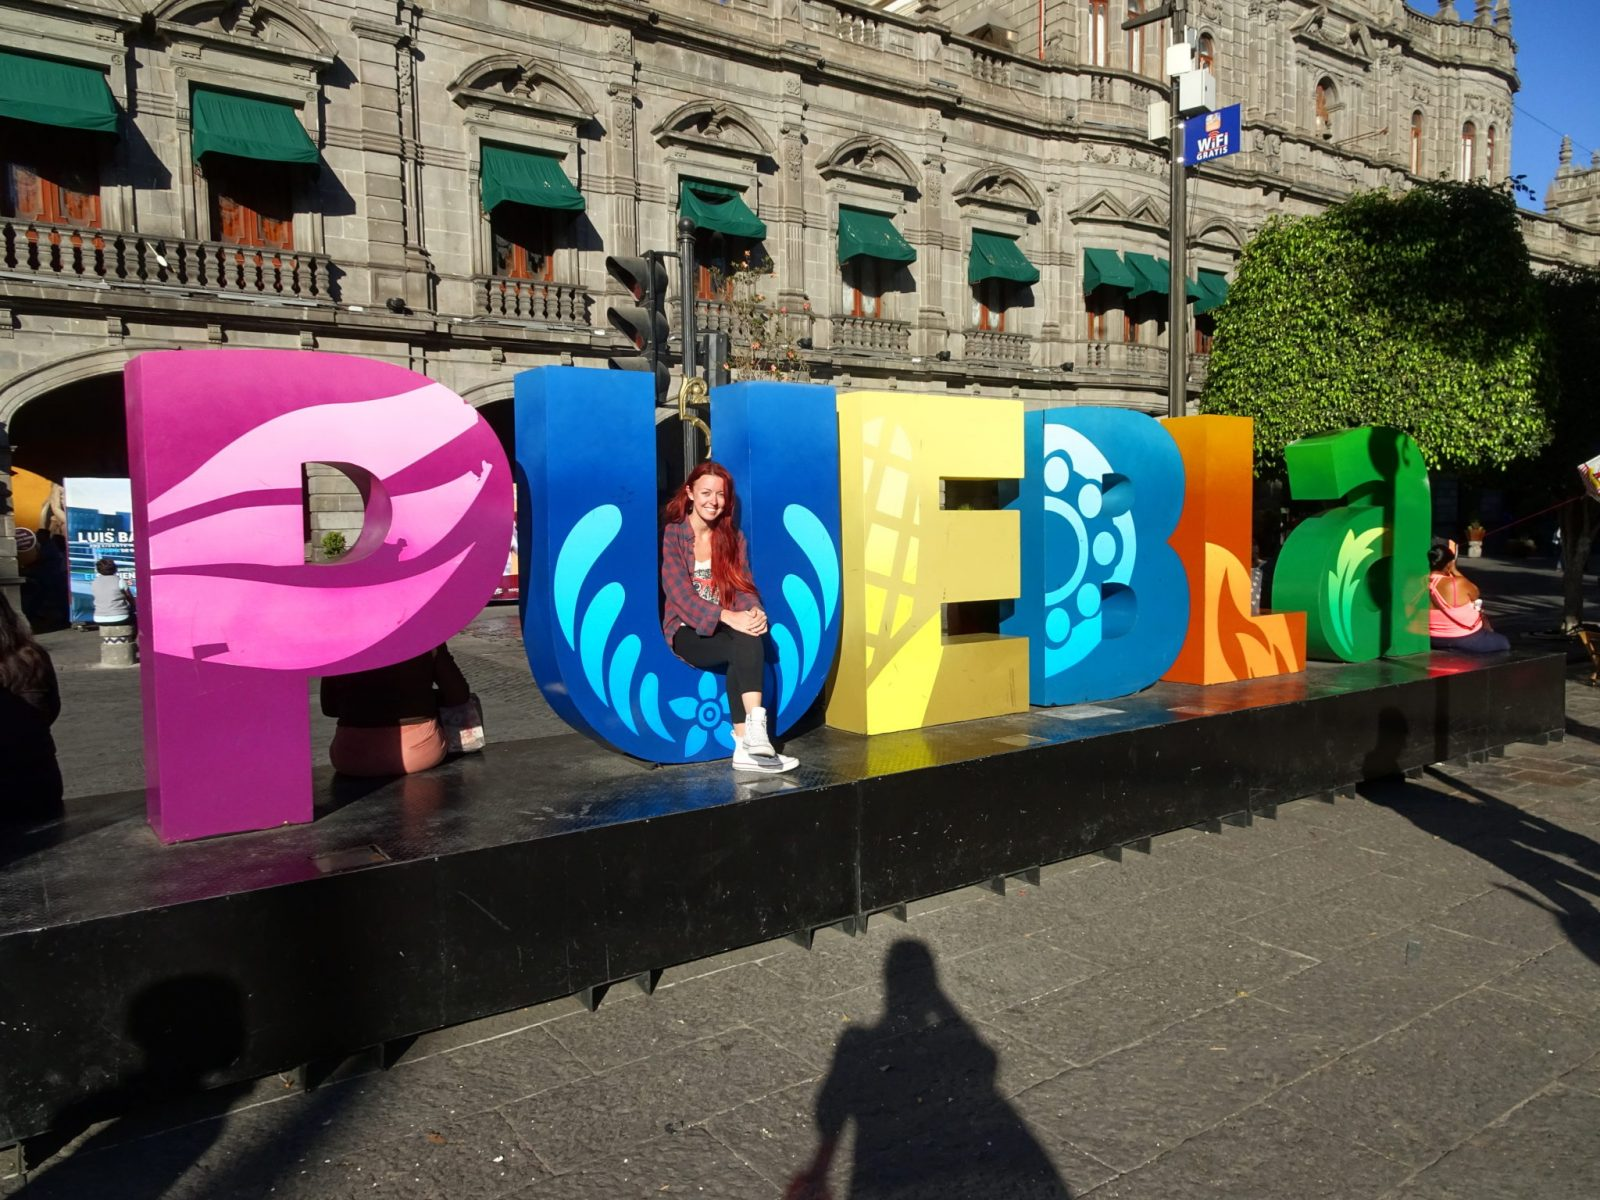 """<img src=""""images/"""" width=""""800"""" height=""""600"""" alt=""""puebla oaxaca - DSC00366 - Mexico: Yes We Mexi-Can, From Puebla to Oaxaca City"""">"""